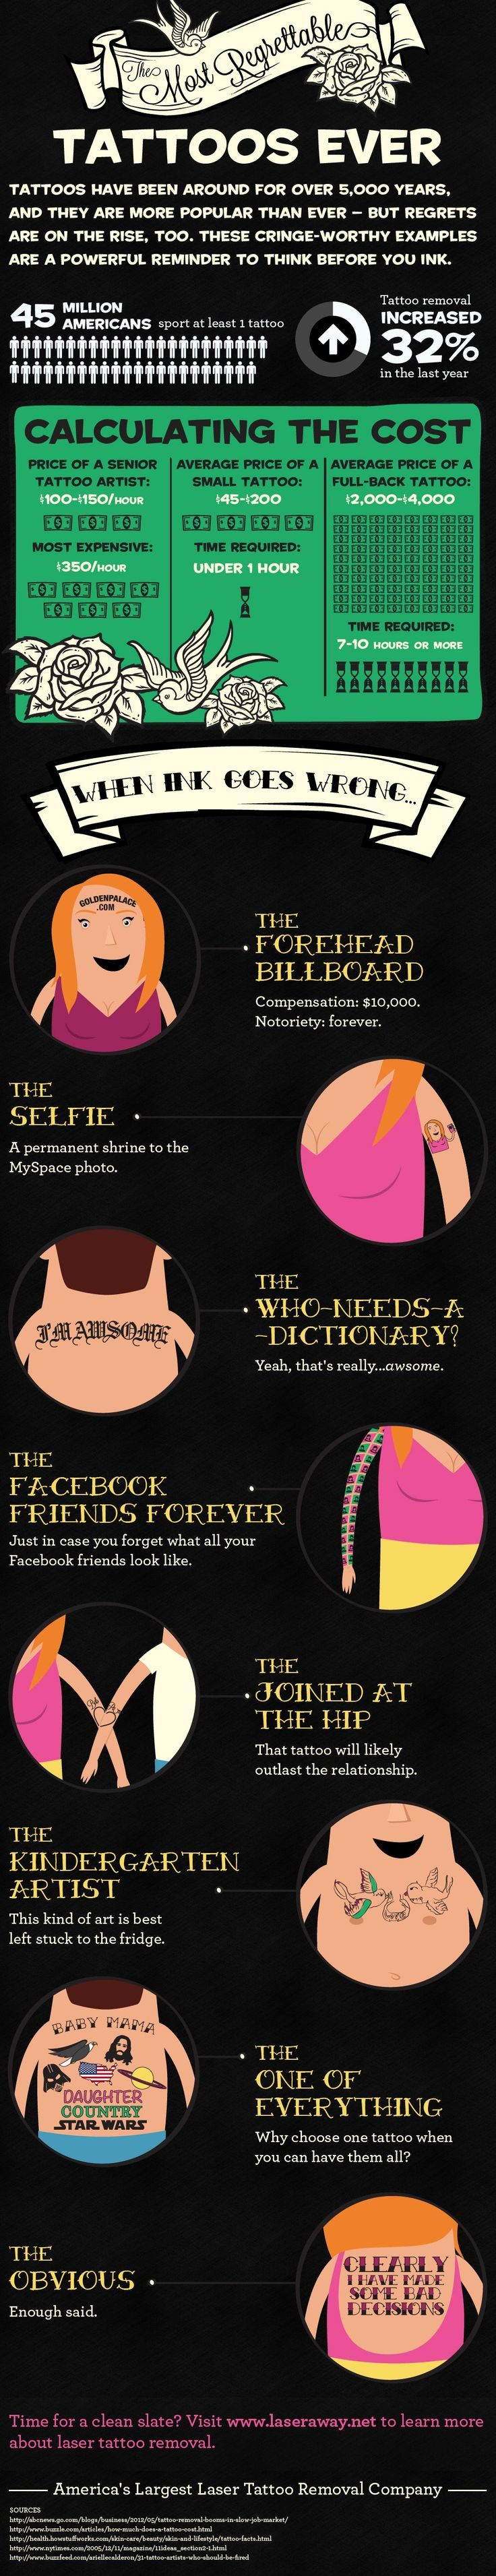 the most regrettable tattoos ever infographic